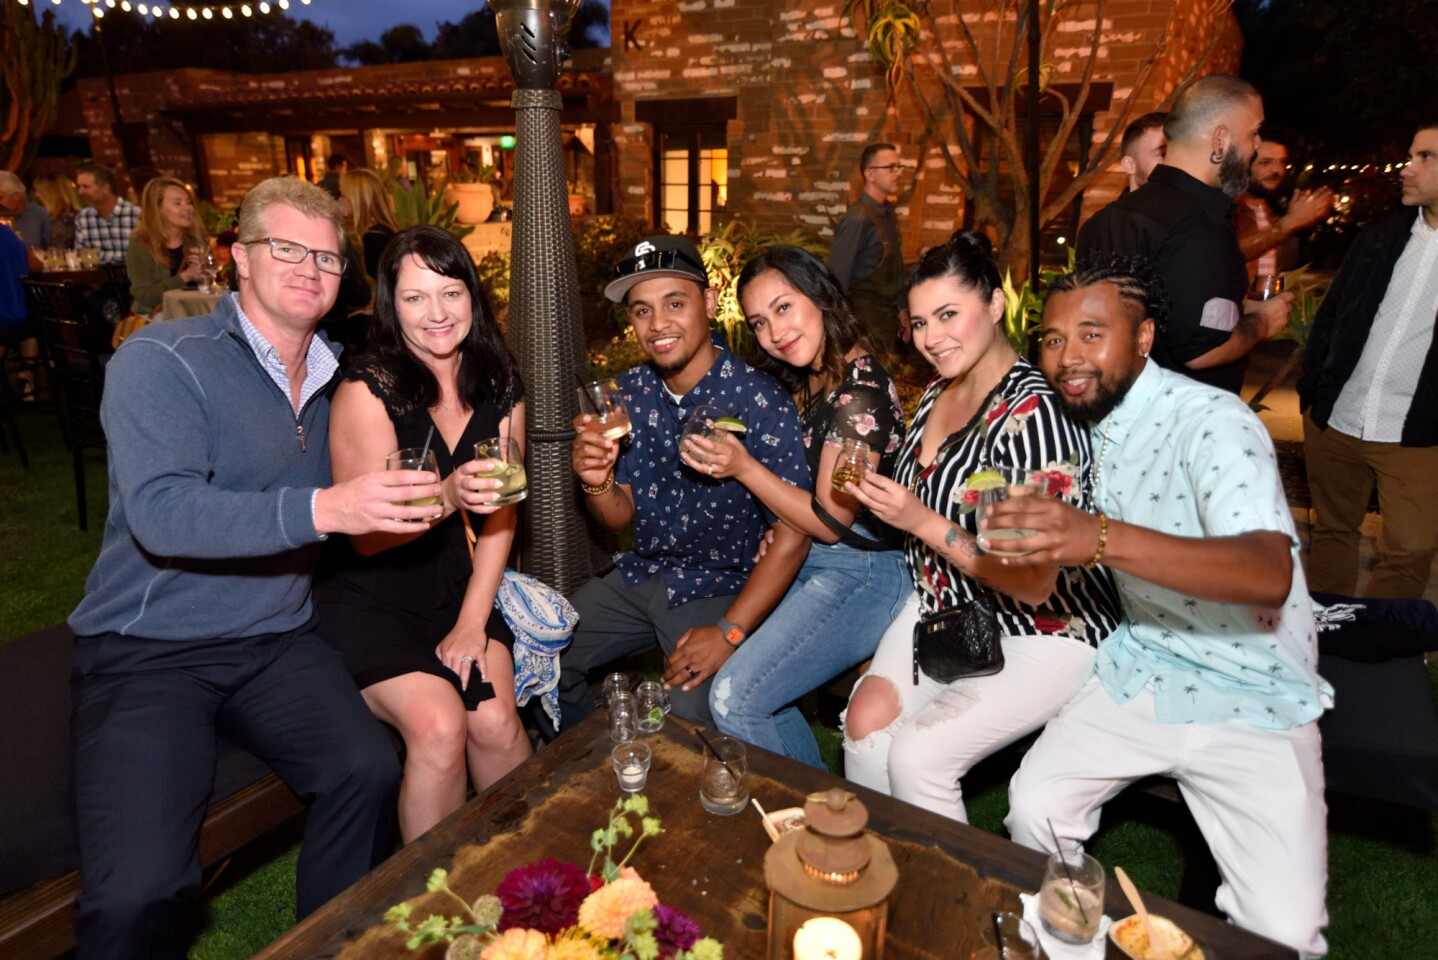 Guests at By the Barrel: Tequila at the Estancia La Jolla hotel enjoyed mariachi music, endless food and Herradura tequila tastings on Friday, June 29, 2018.